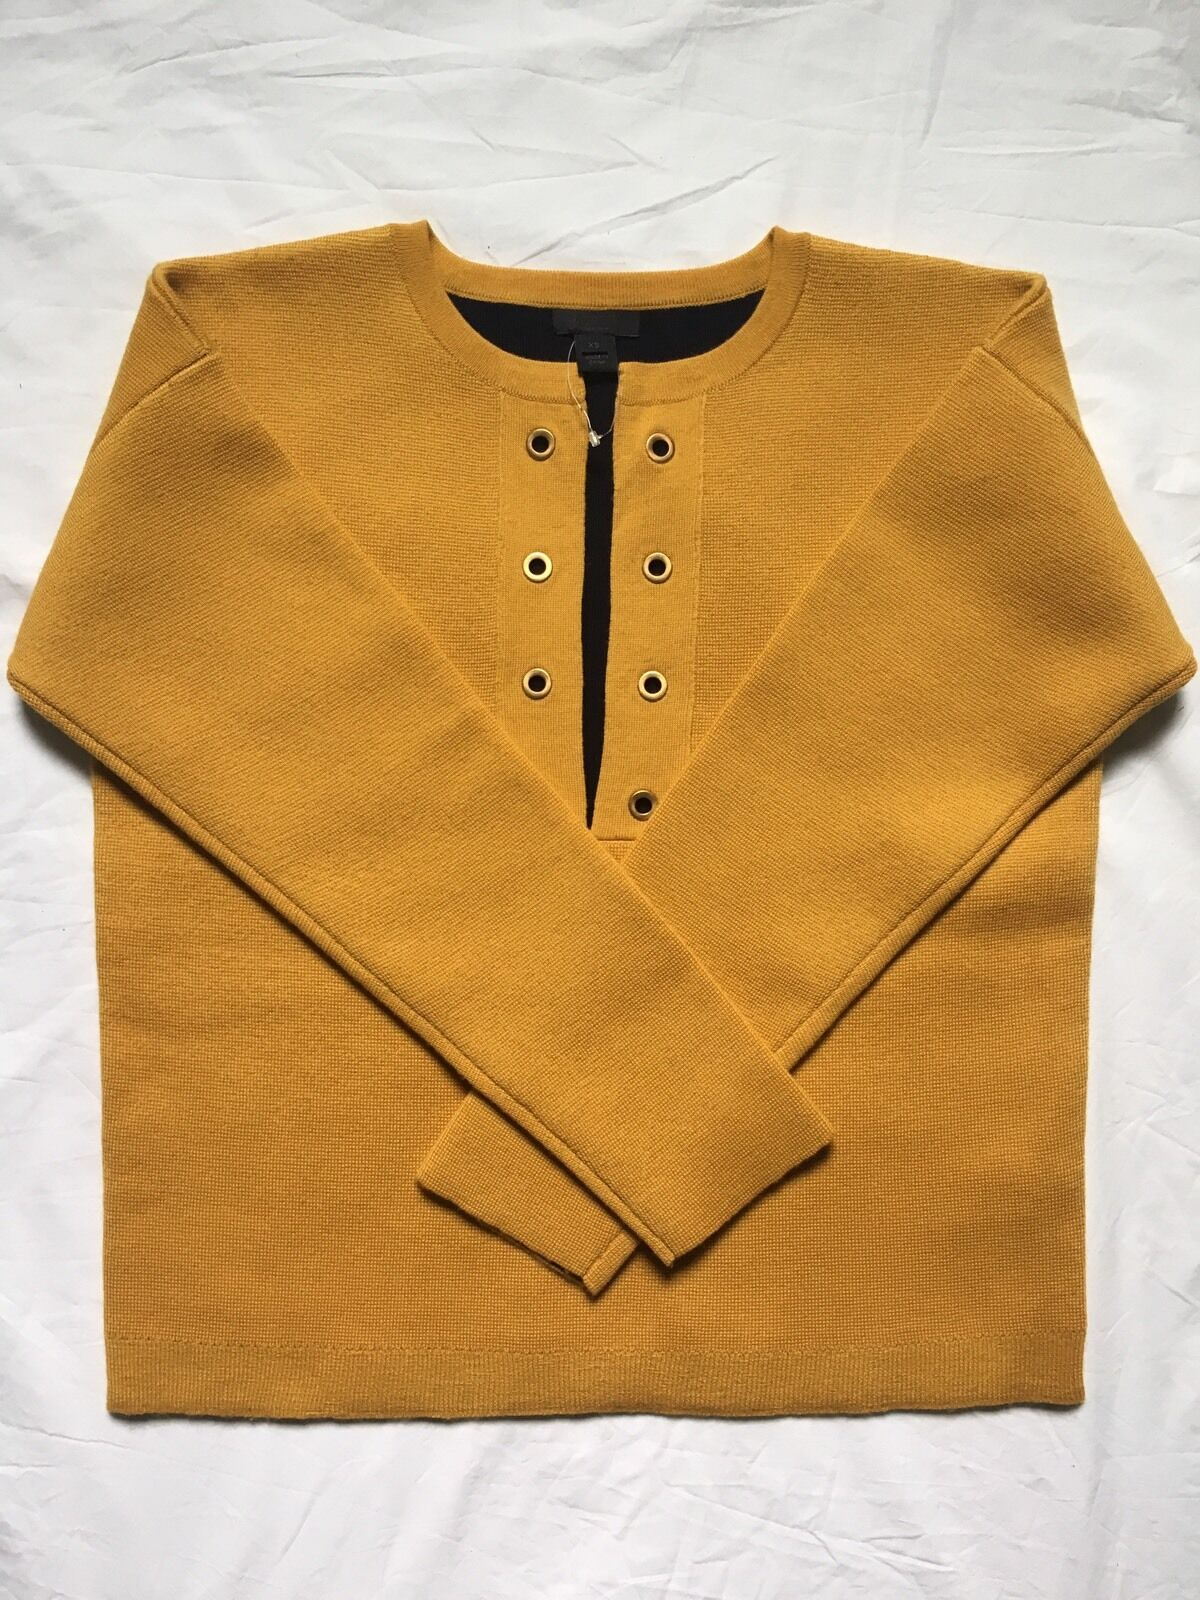 NEW J.CREW COLLECTION BONDED LACE-UP SWEATER, F5368, SZ XS, Yellow ,